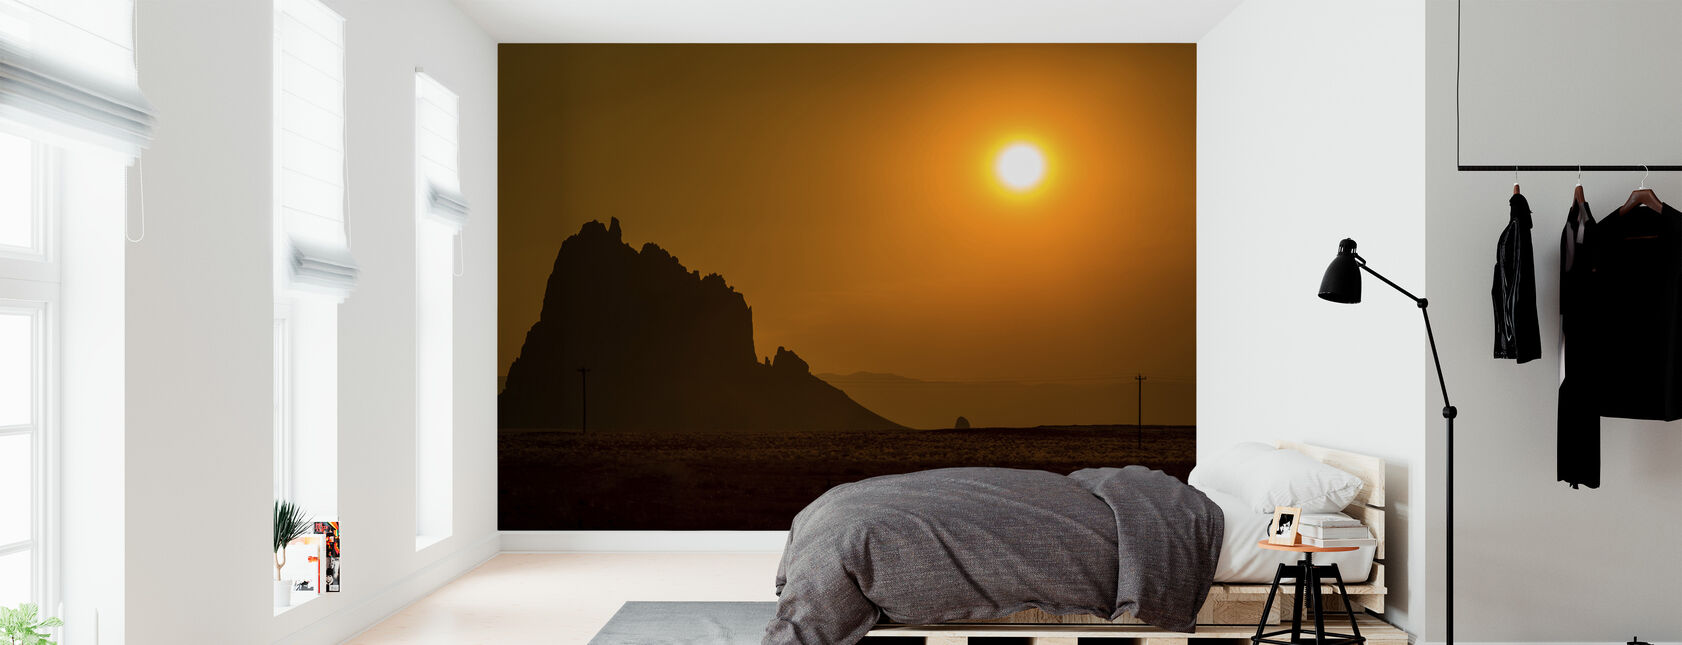 Shiprock at Sunset - Wallpaper - Bedroom